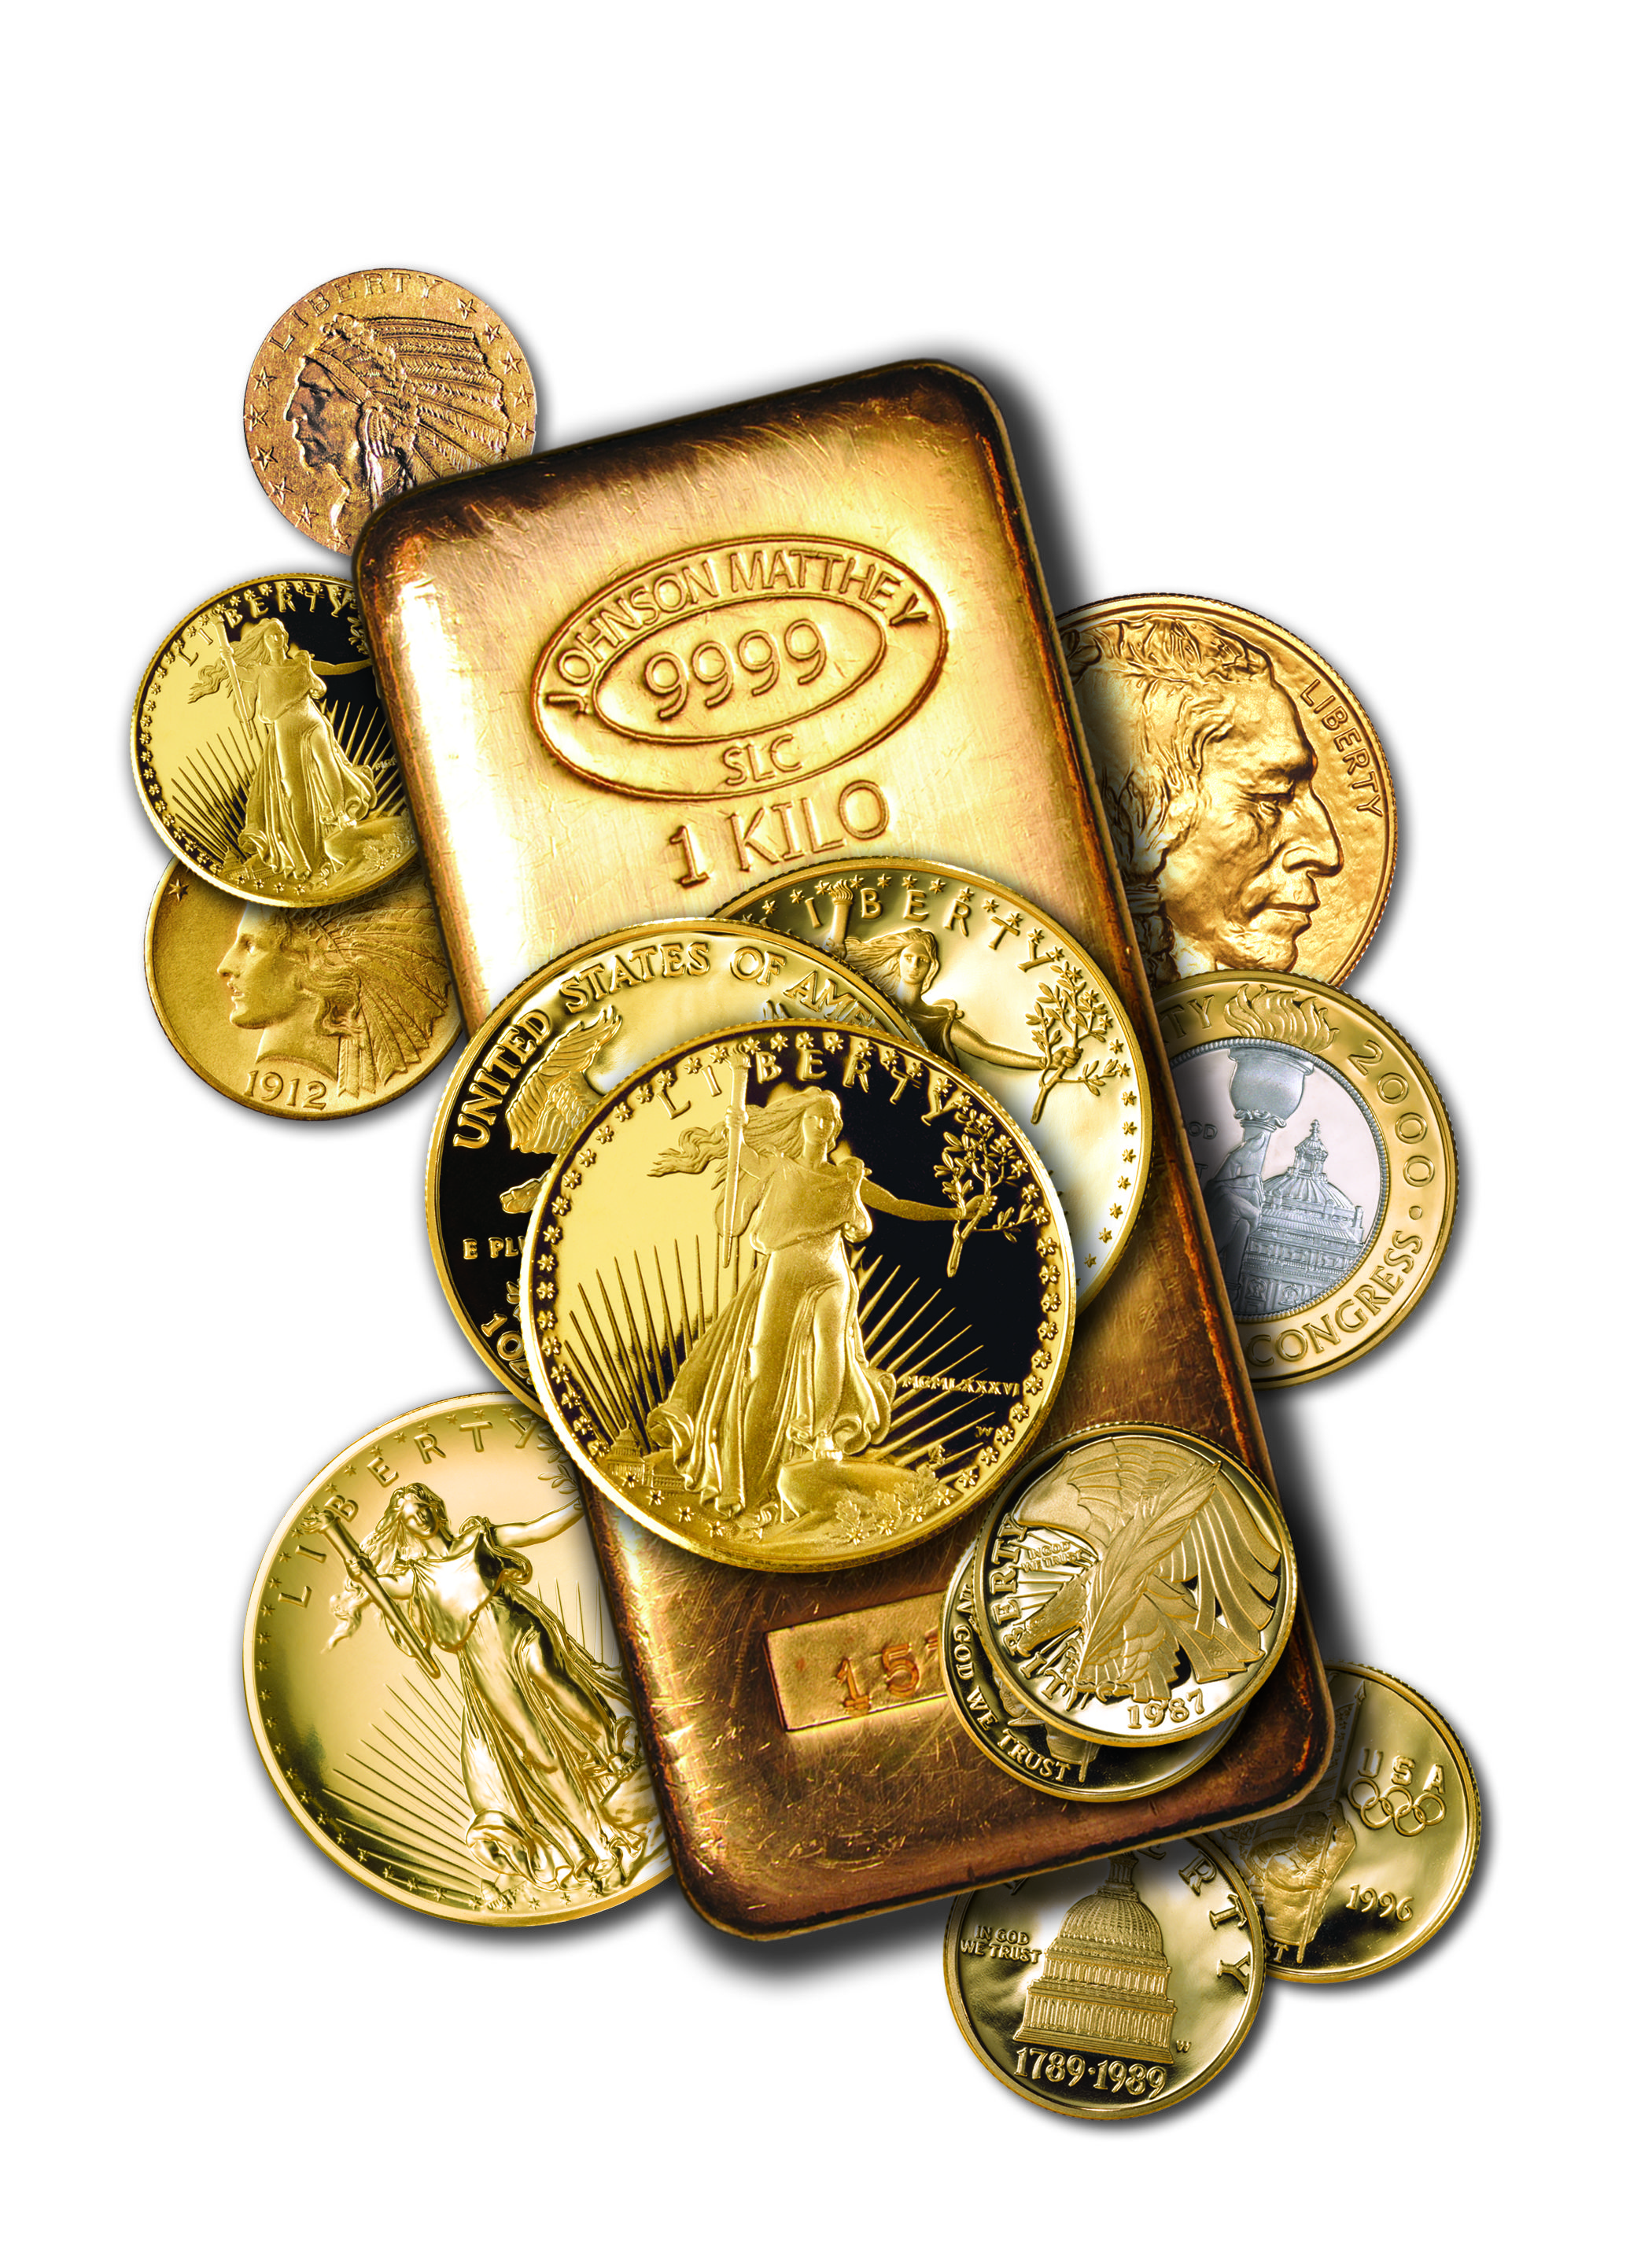 Philip N. Diehl on Gold and Precious Metals